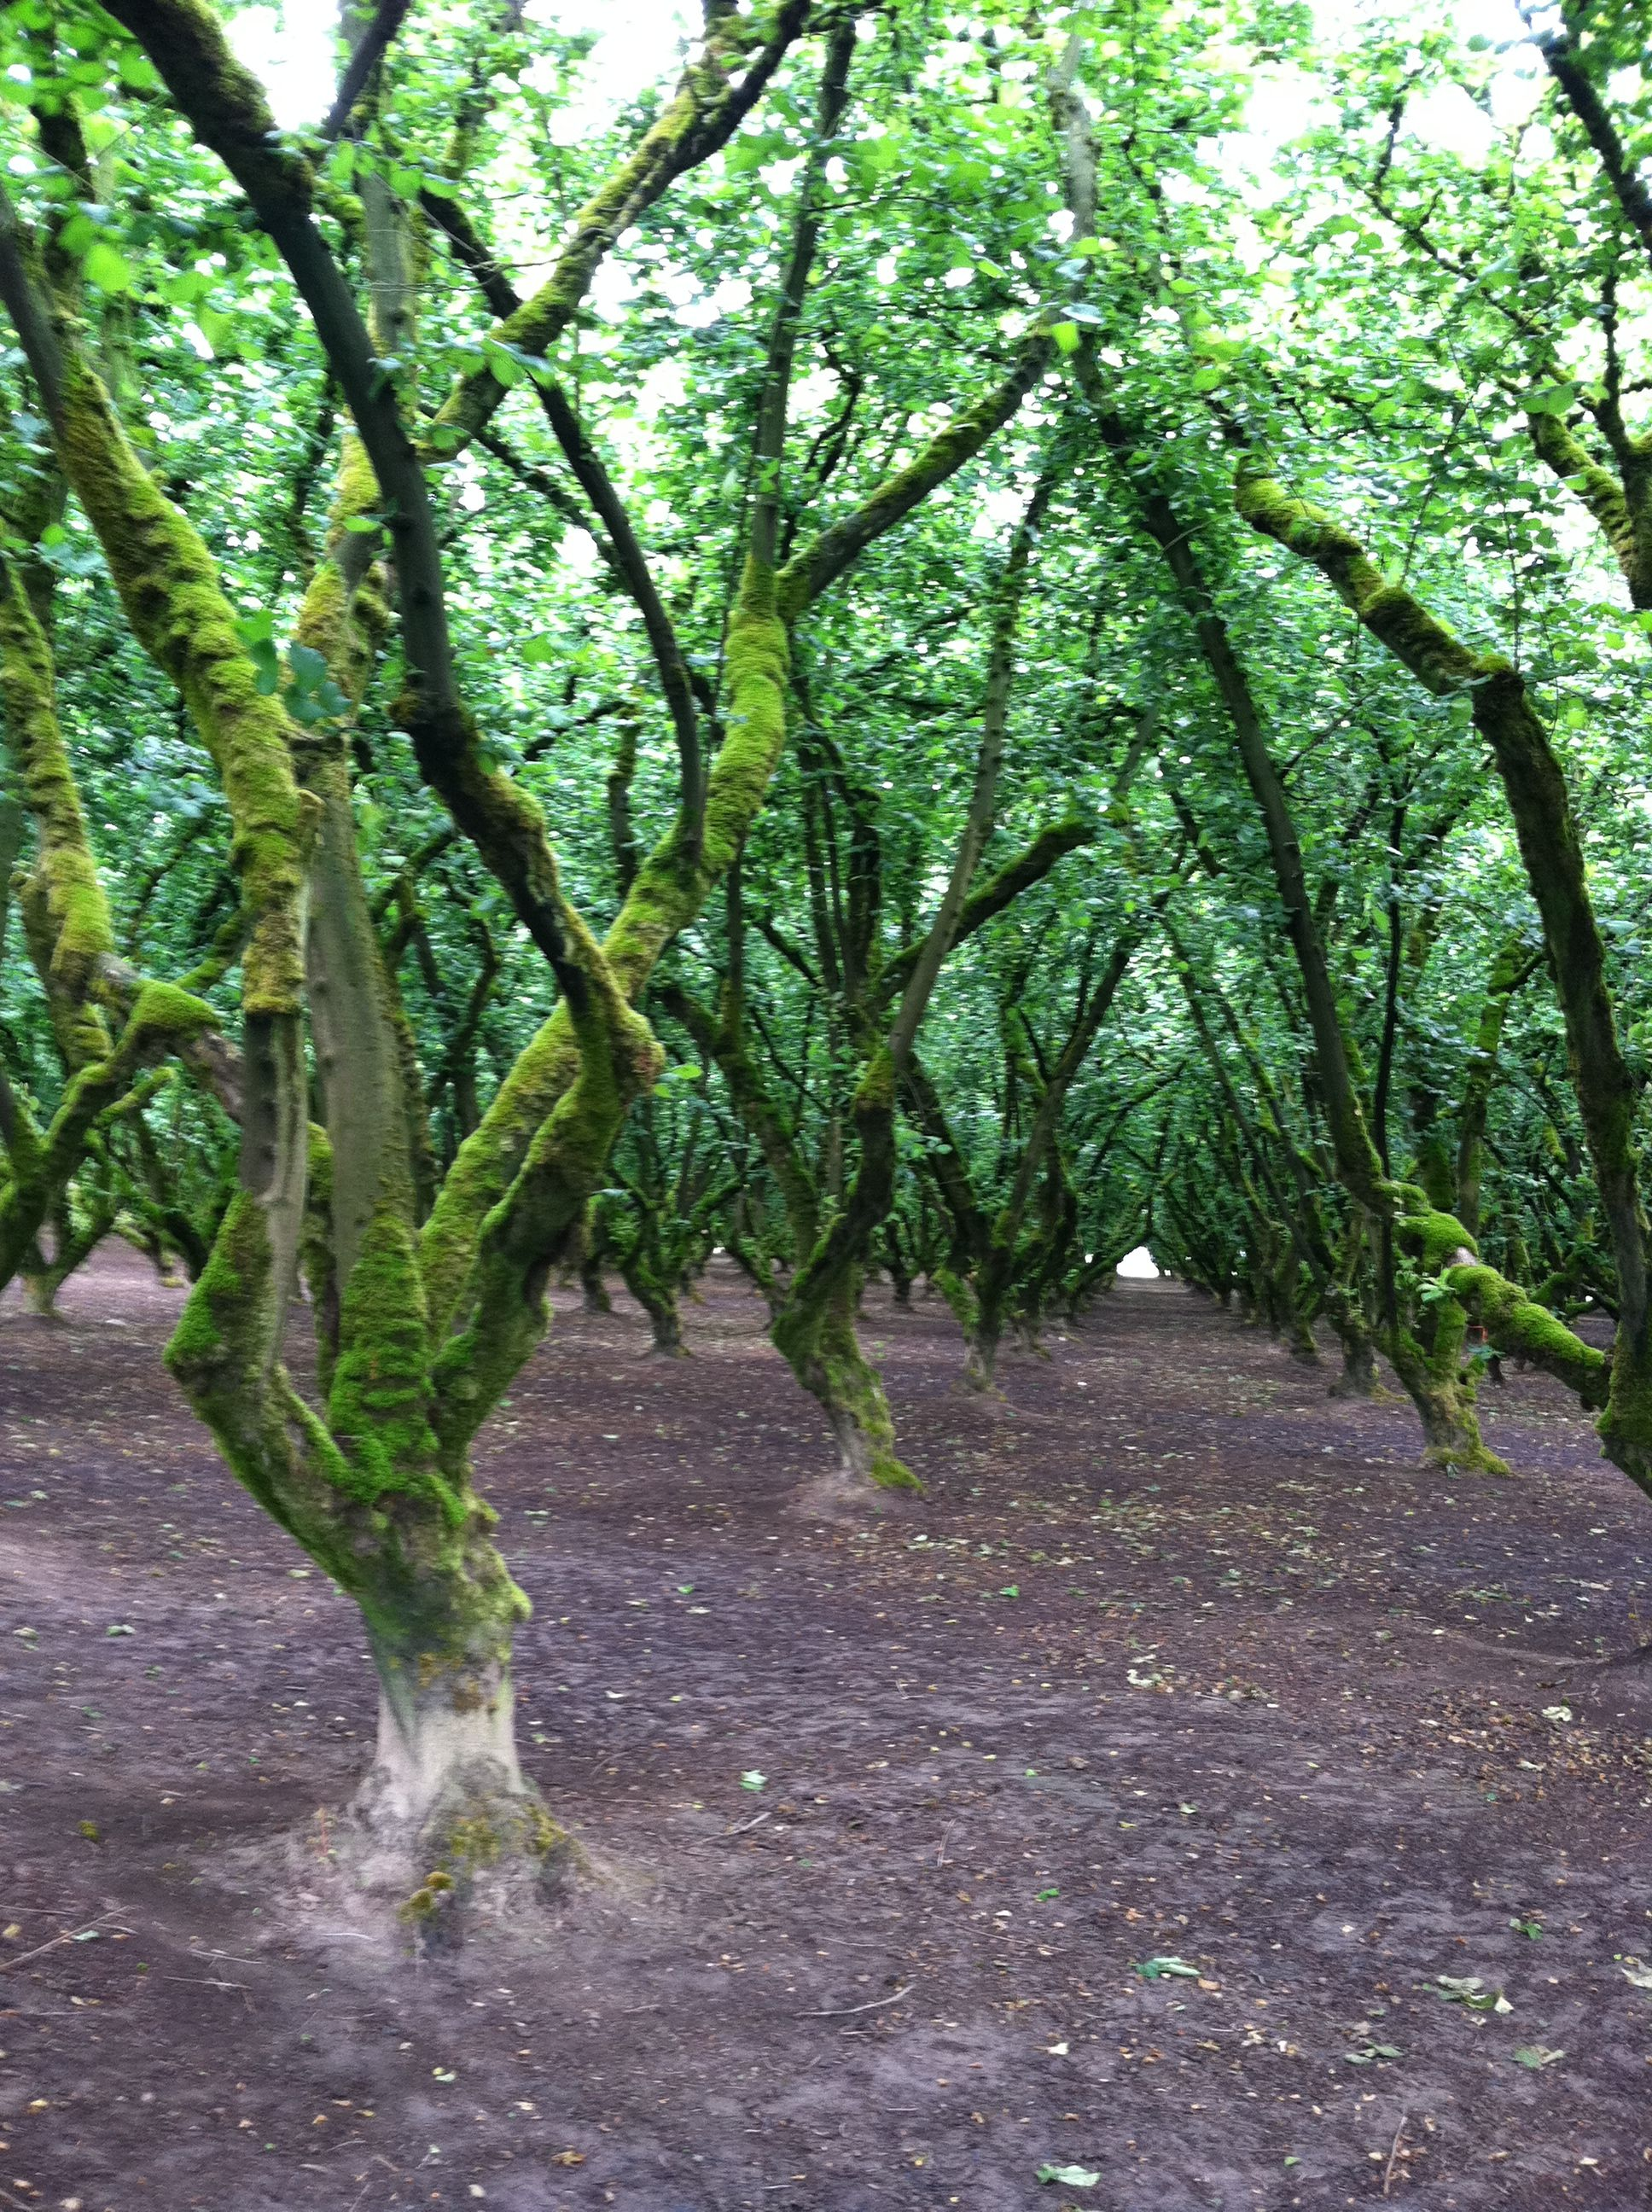 Orchard in rural Oregon